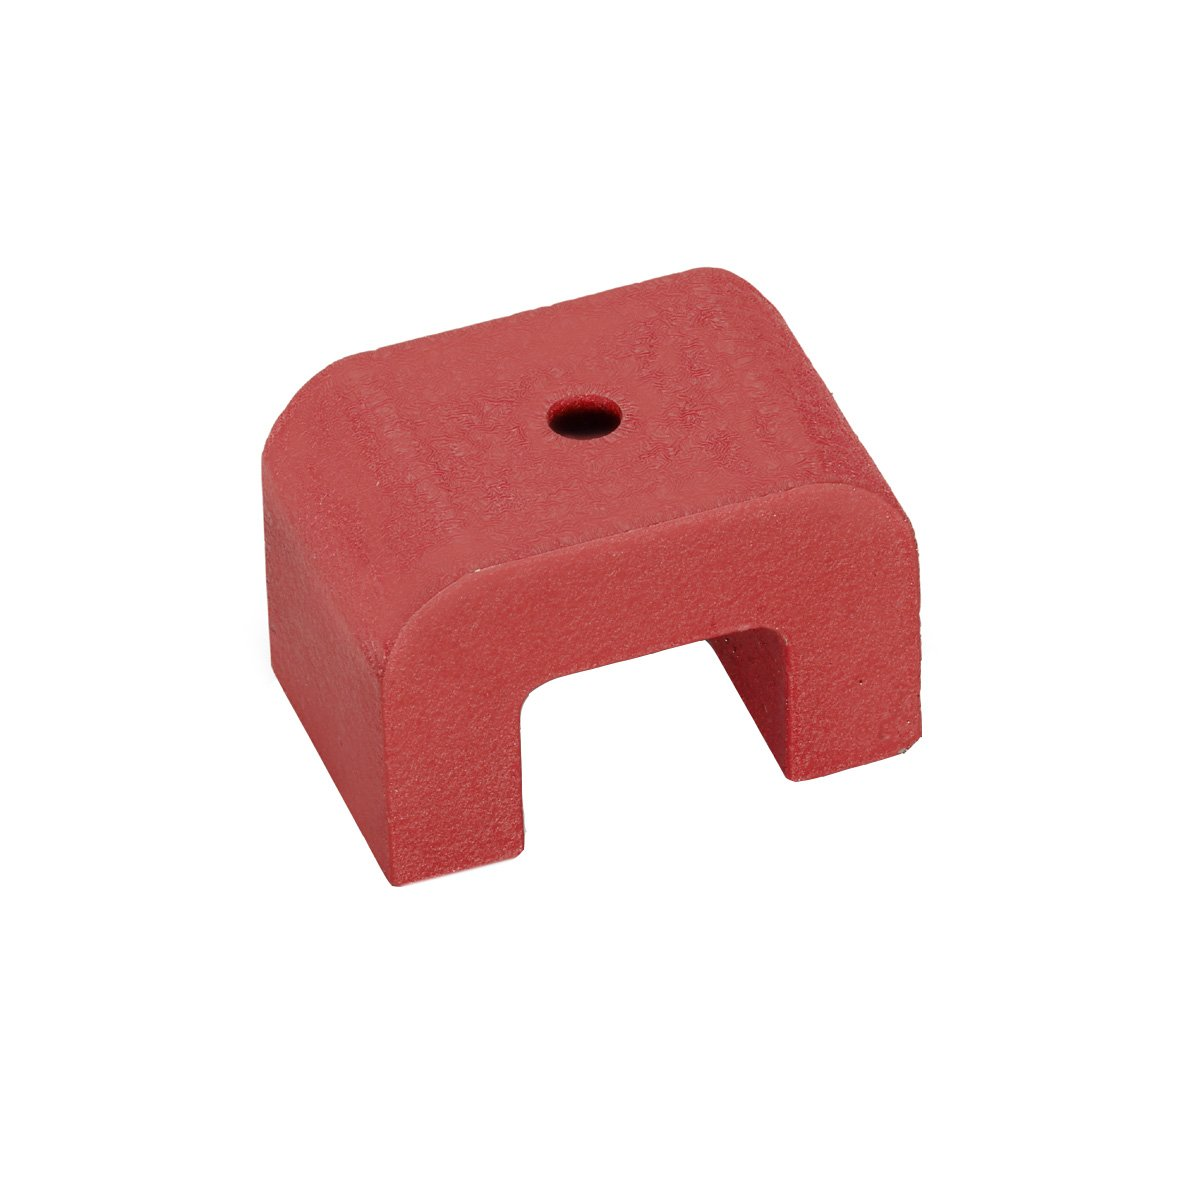 J.W. Winco safety 62-AN-30 GN62 safety U-Shaped Magnet with L Thru Hole 1.18